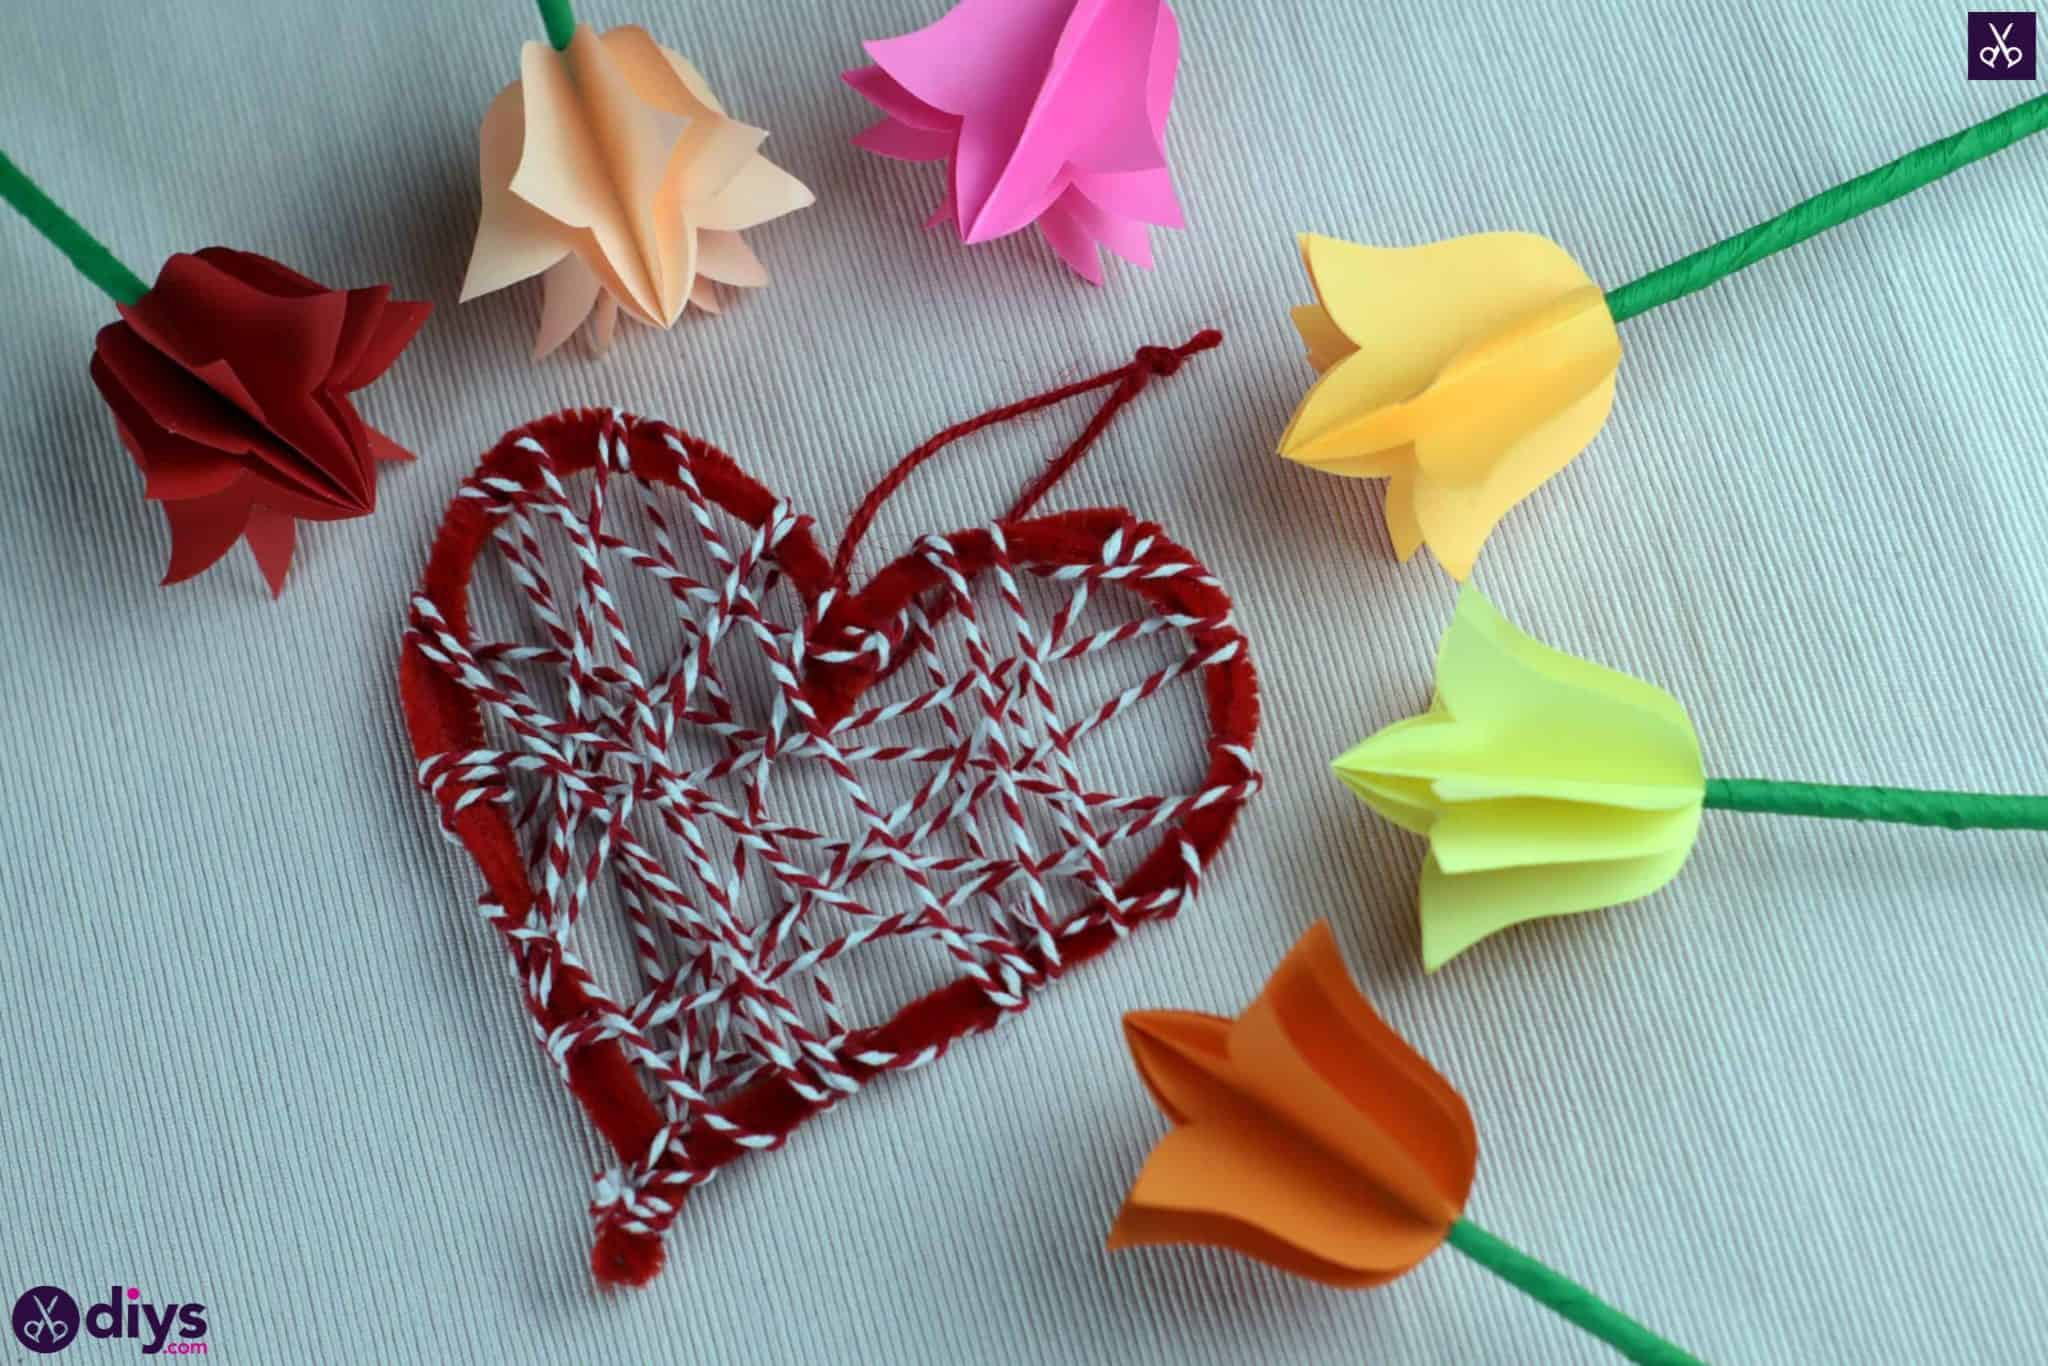 Diy hanging heart wall decor step 1b